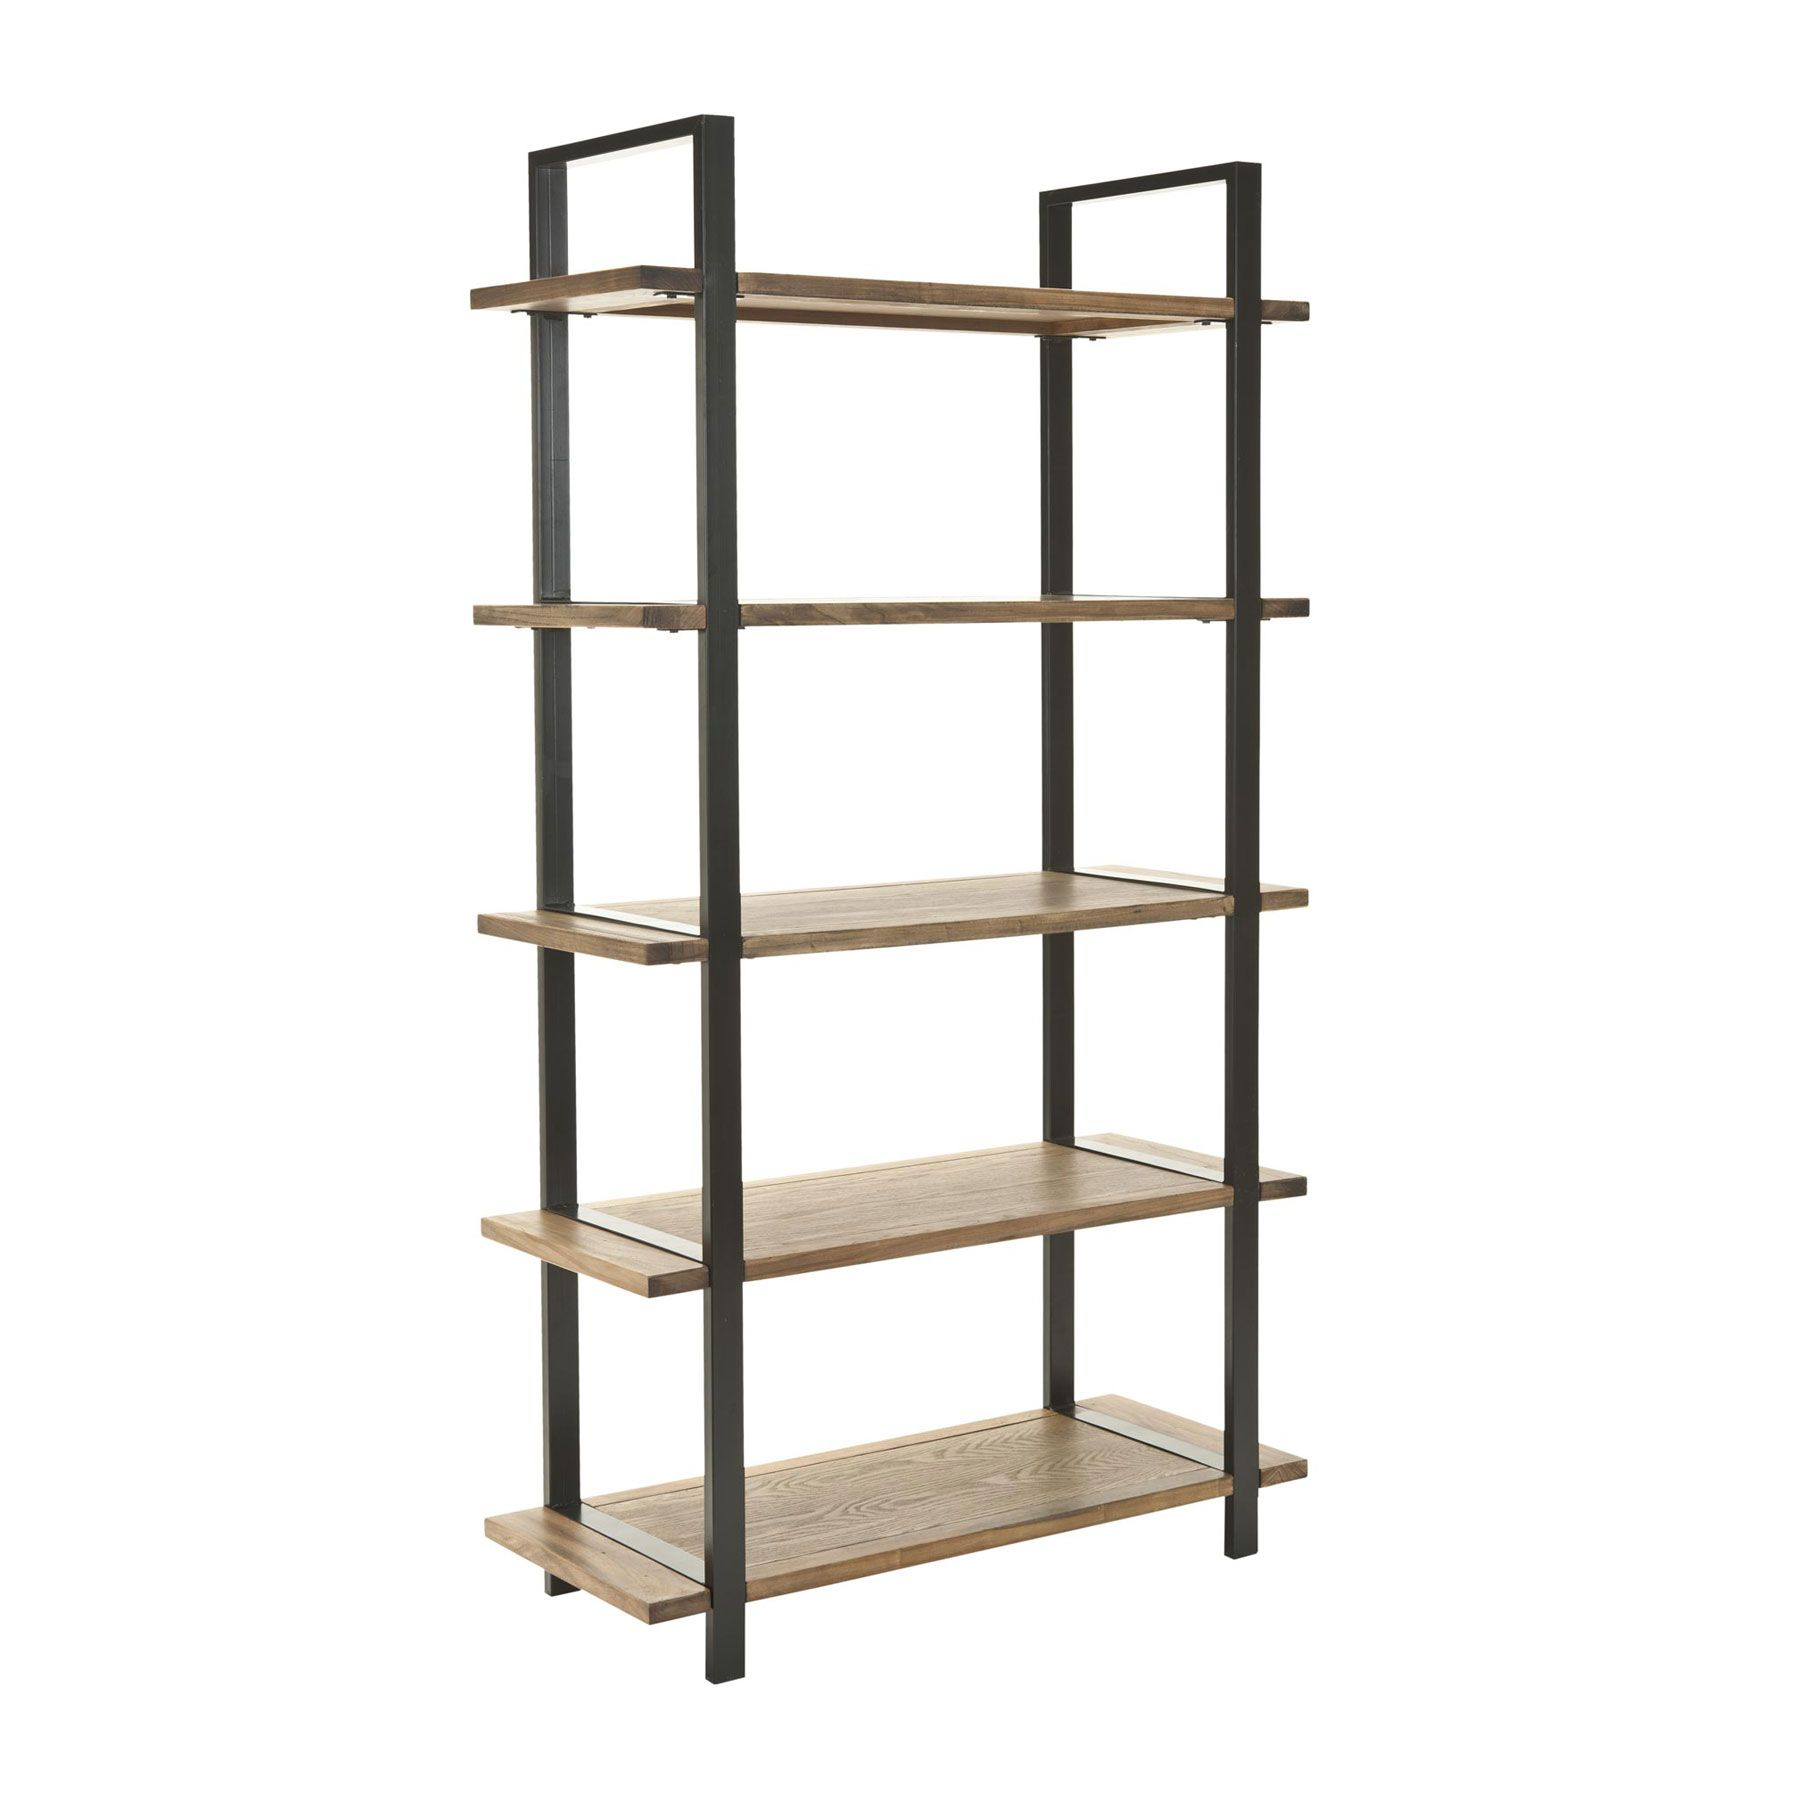 ngo k x product furniture th shelves adjustable brown en nh g household h dimensions storey bookshelf bookshelves natural wood t name nguy n i